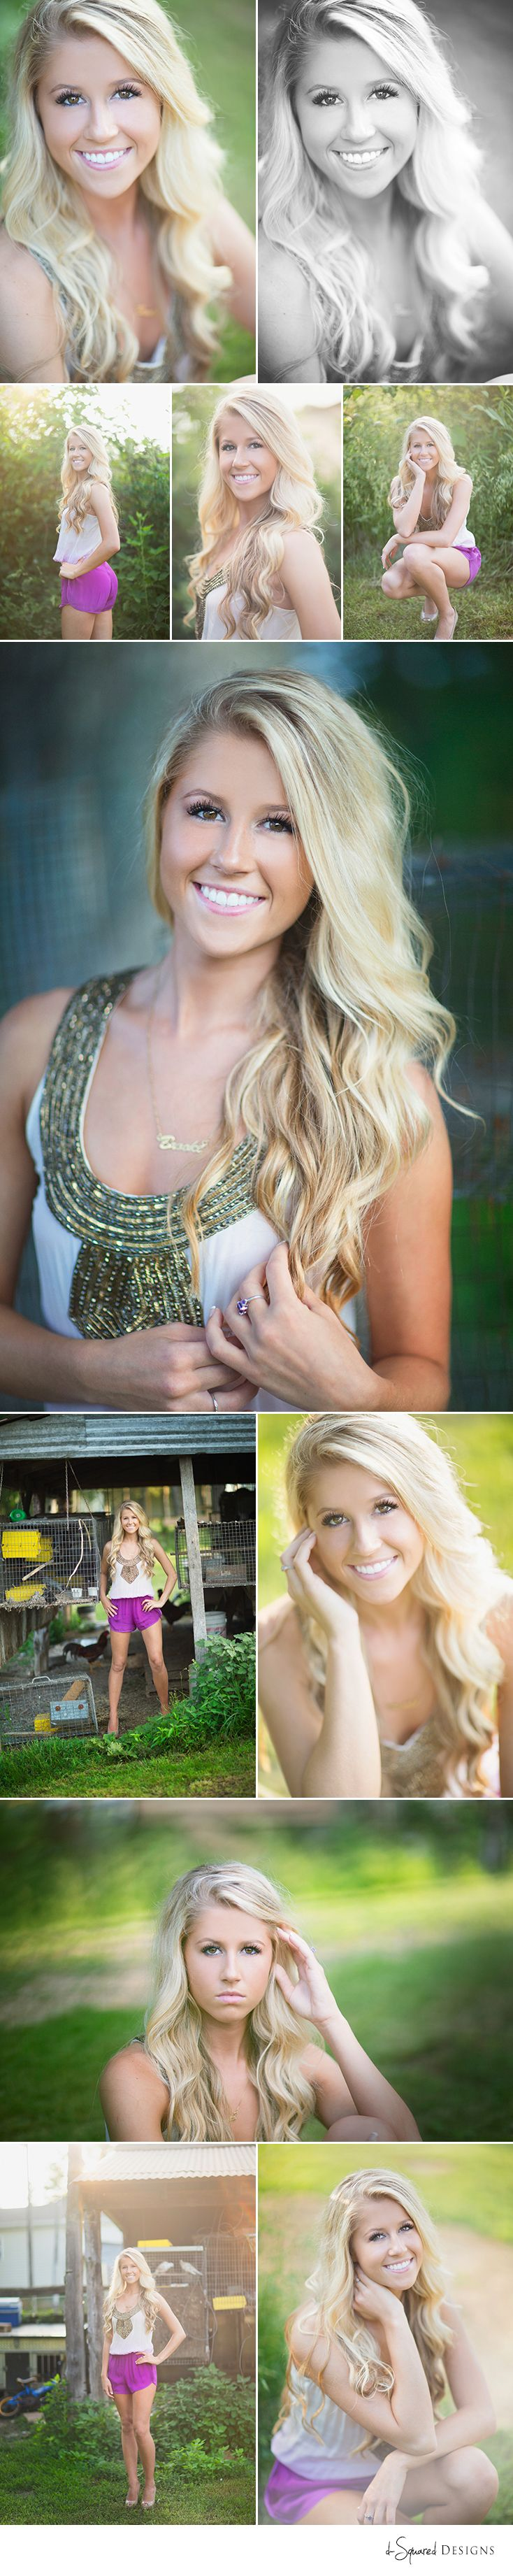 d-Squared Designs St. Louis, MO Senior Photography. Senior girl photography. Senior girl posing. Gorgeous. Blonde. Barbie. Country session. Posing ideas.